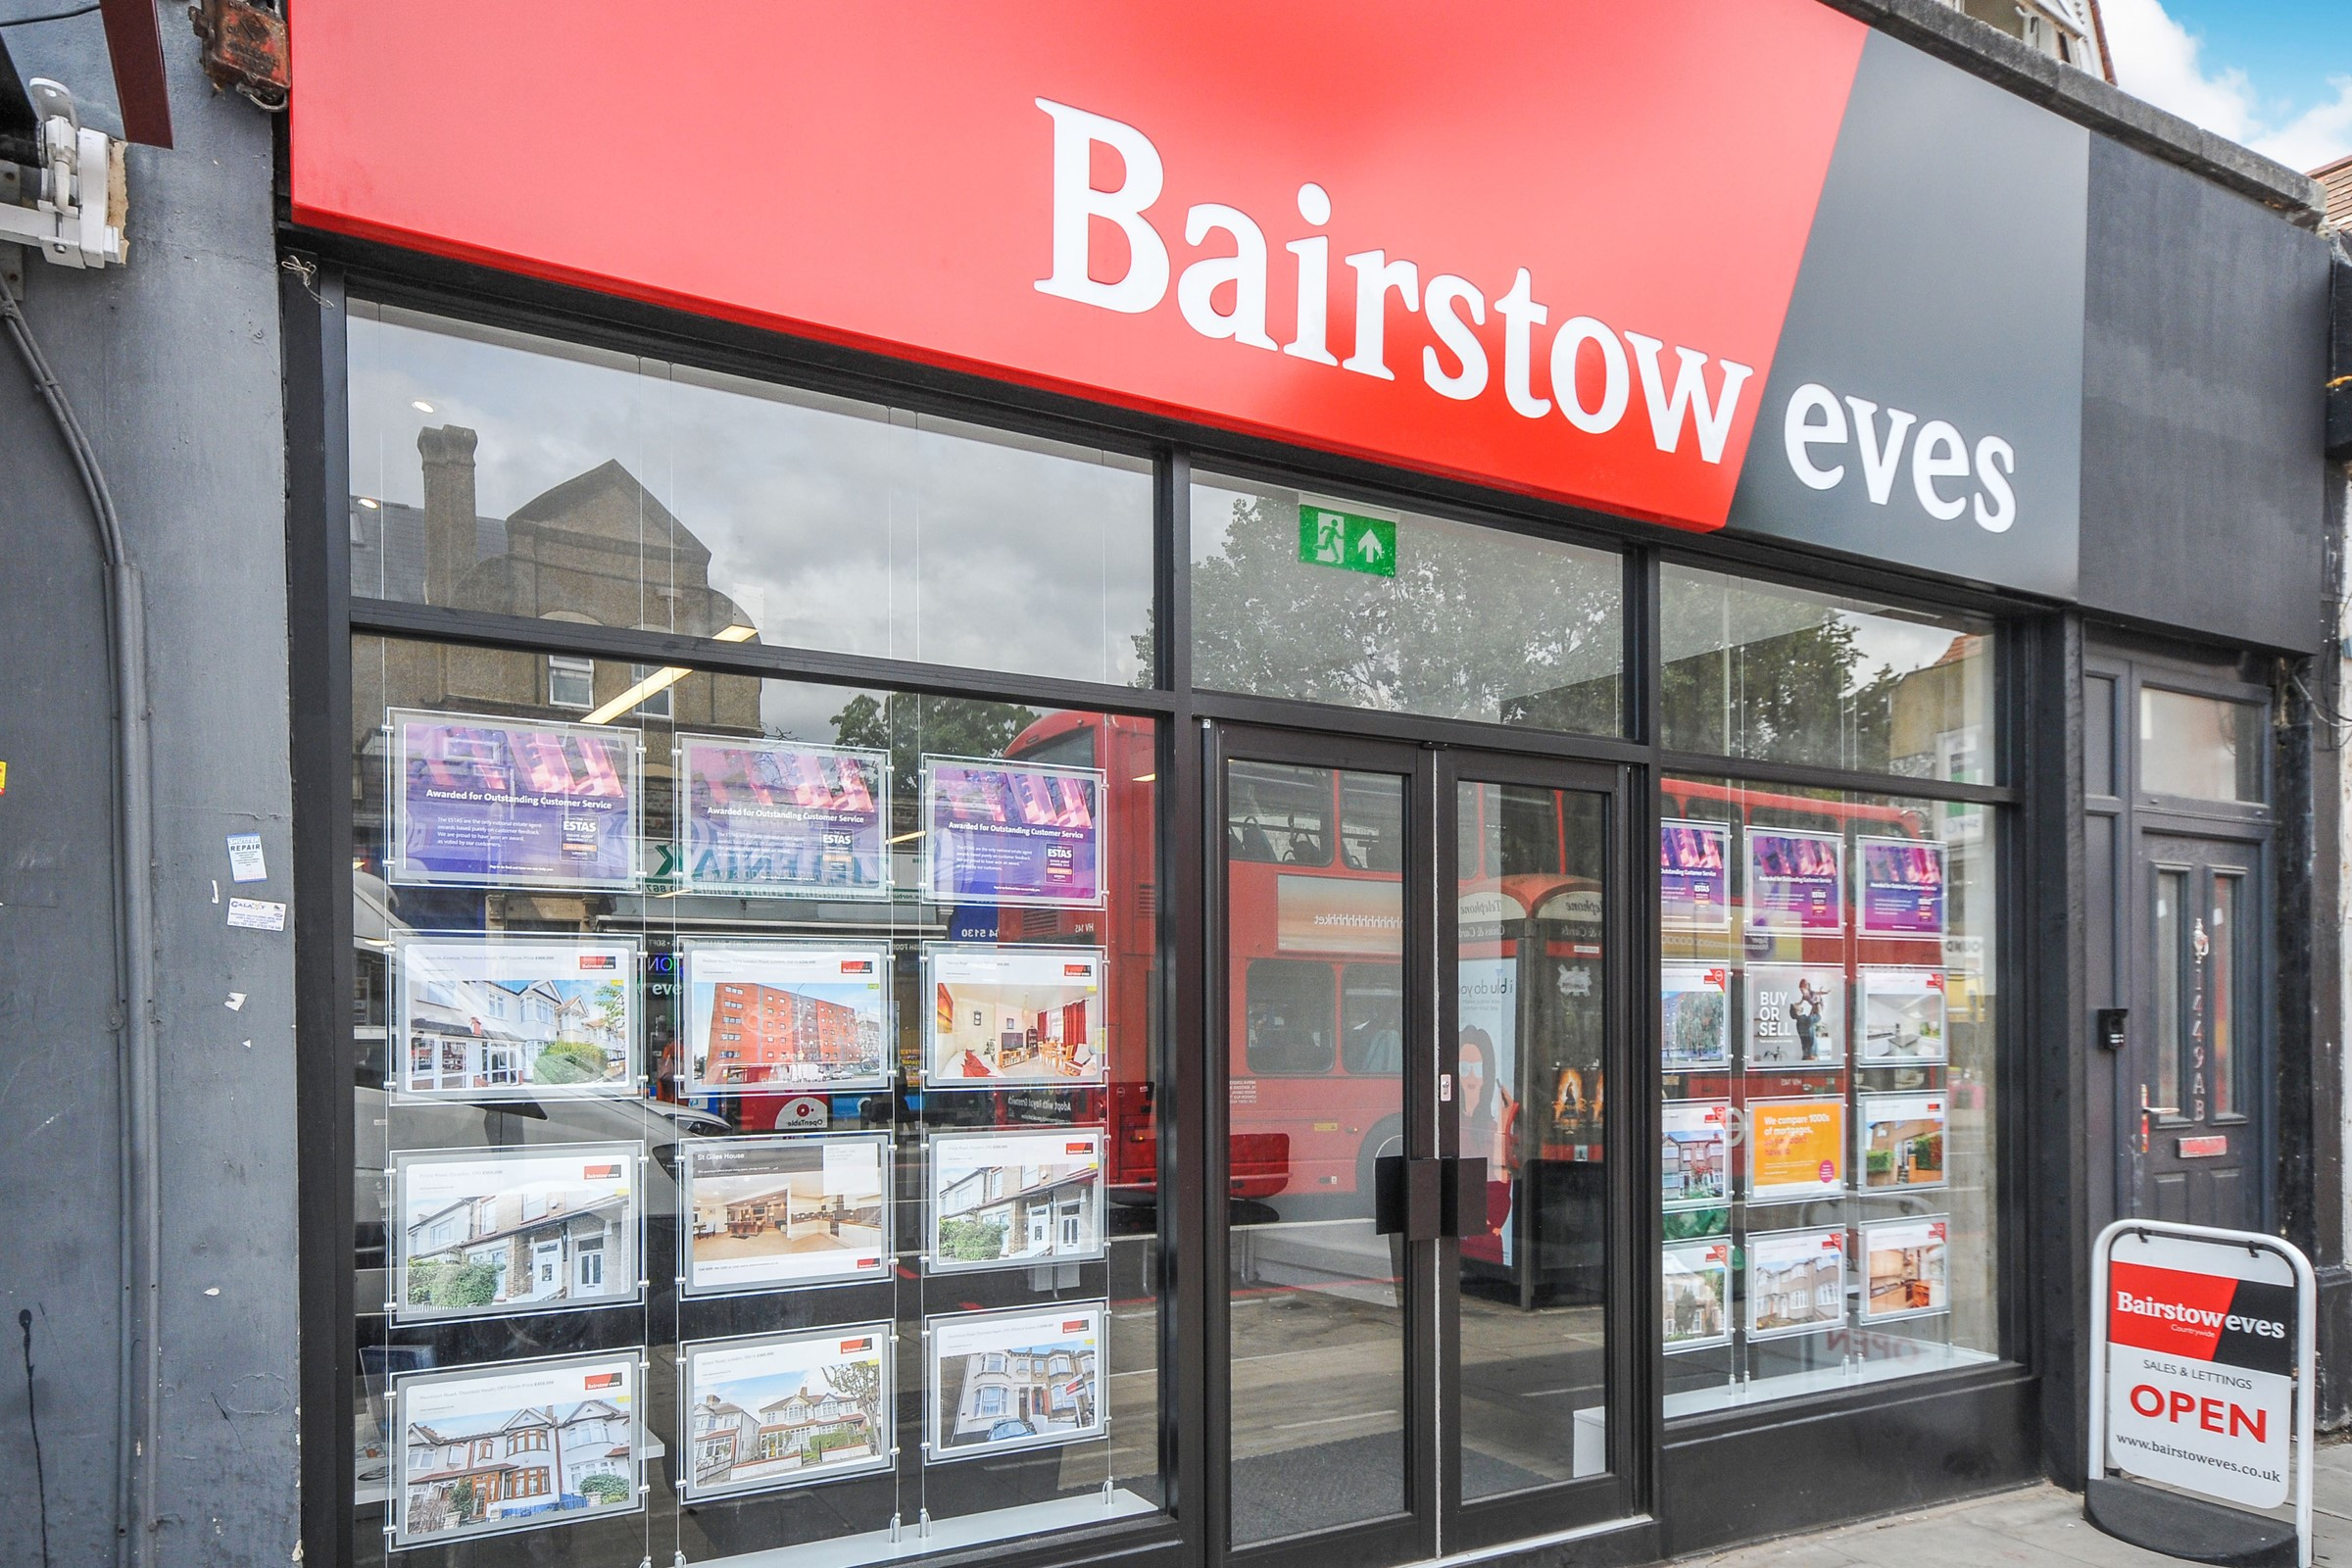 Bairstow Eves Estate and Lettings Agents Norbury